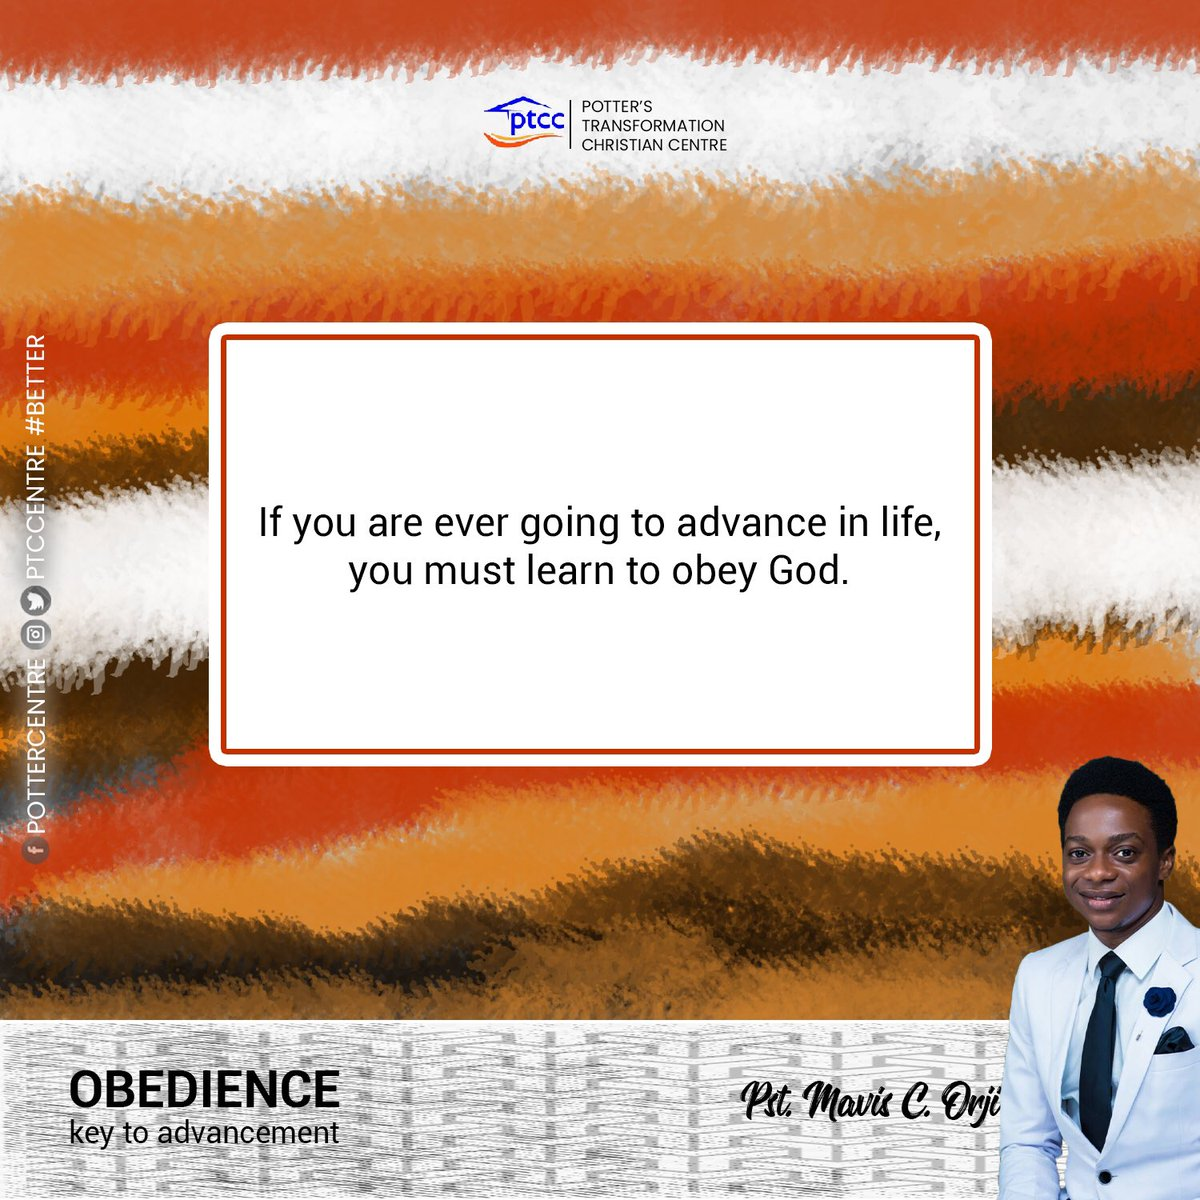 Learn to obey God #ptcc #pottersofinstagram #transformationtuesday #TransformationNow #WeAreTransformed #Better #itcanonlygetbetter #february #obedience #Midweekservice.